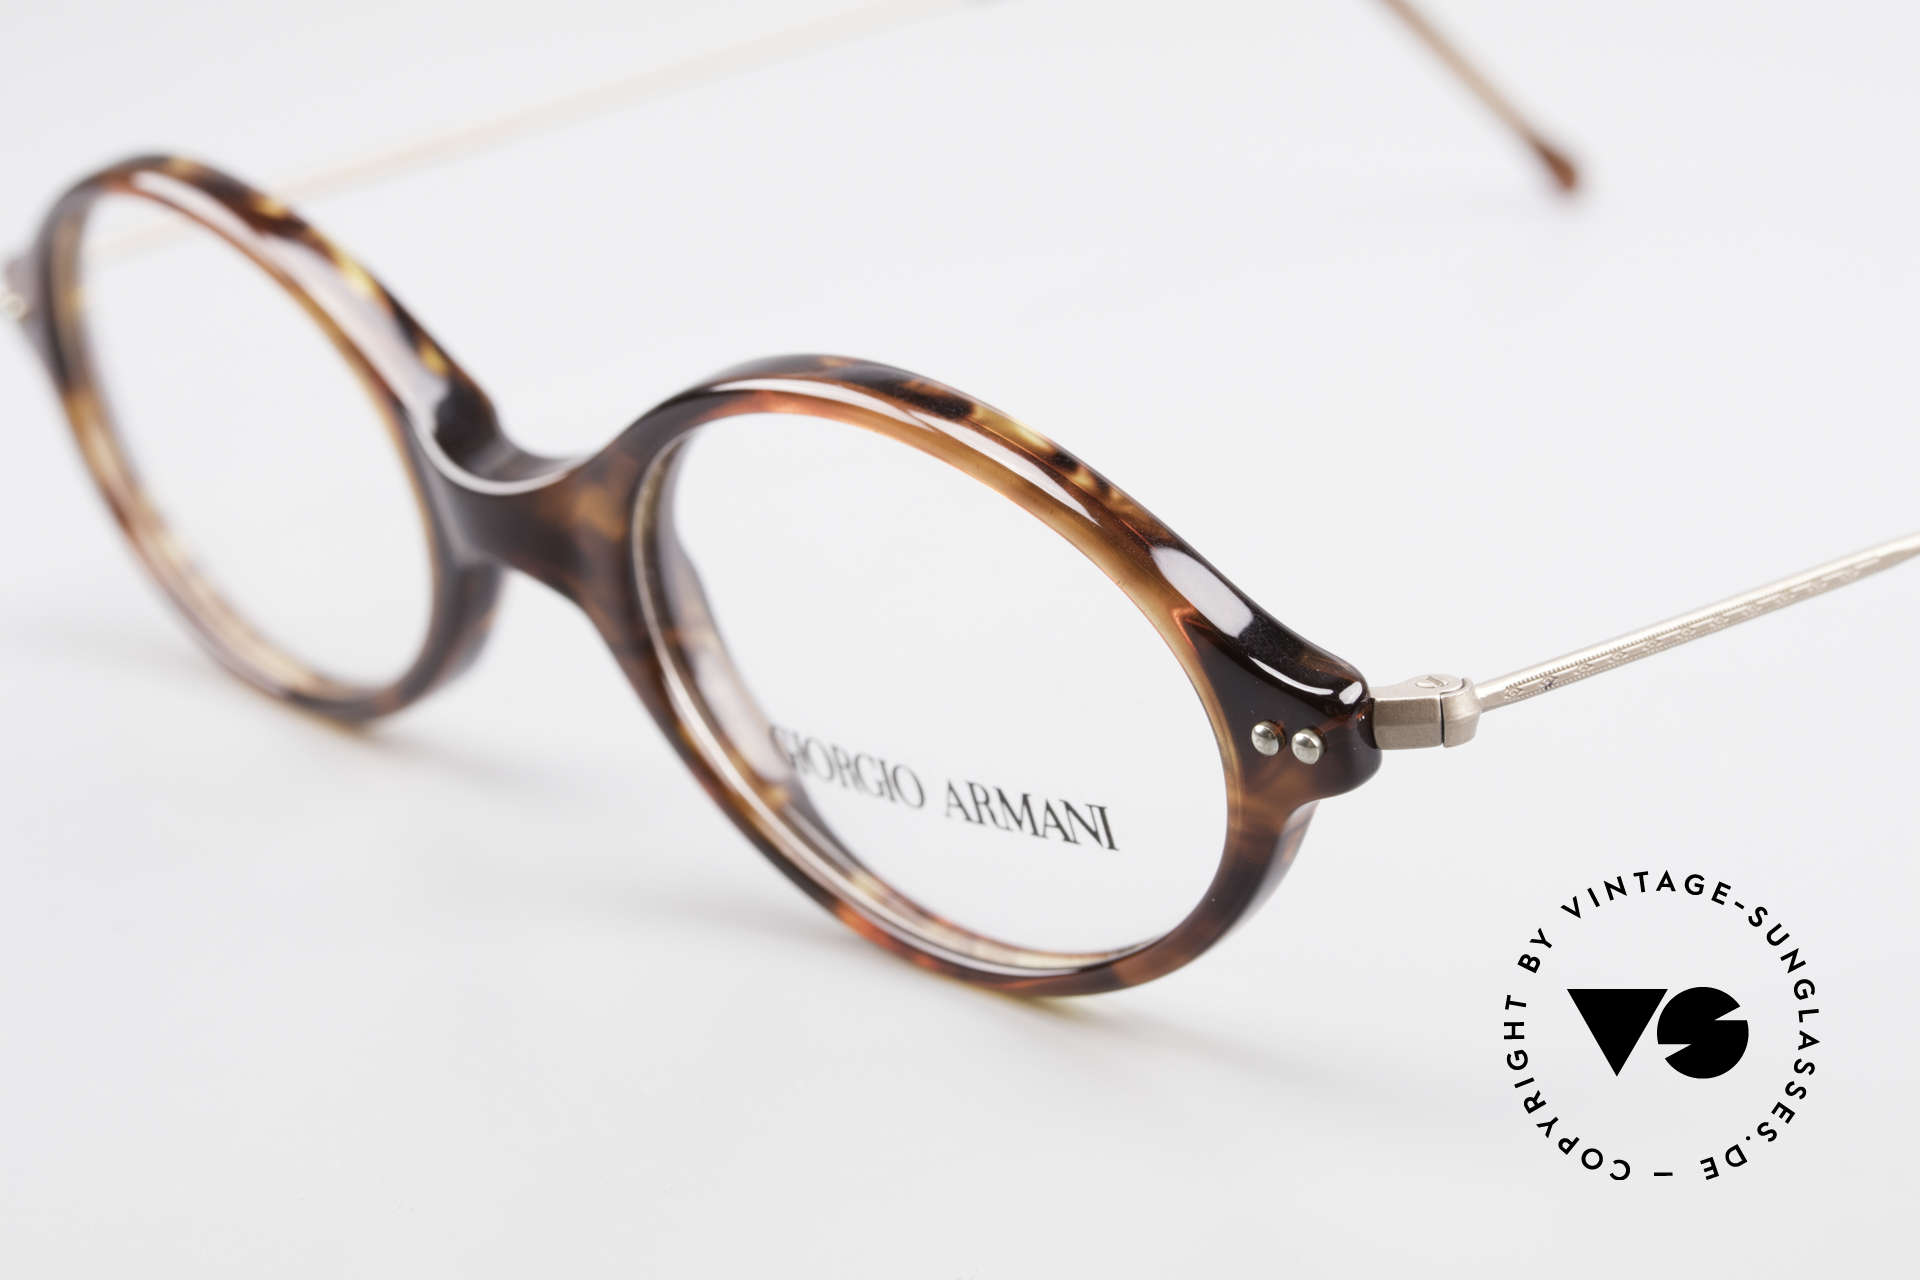 Giorgio Armani 378 90's Unisex Eyeglasses Oval, top quality and very comfortable (weighs only 9g), Made for Men and Women